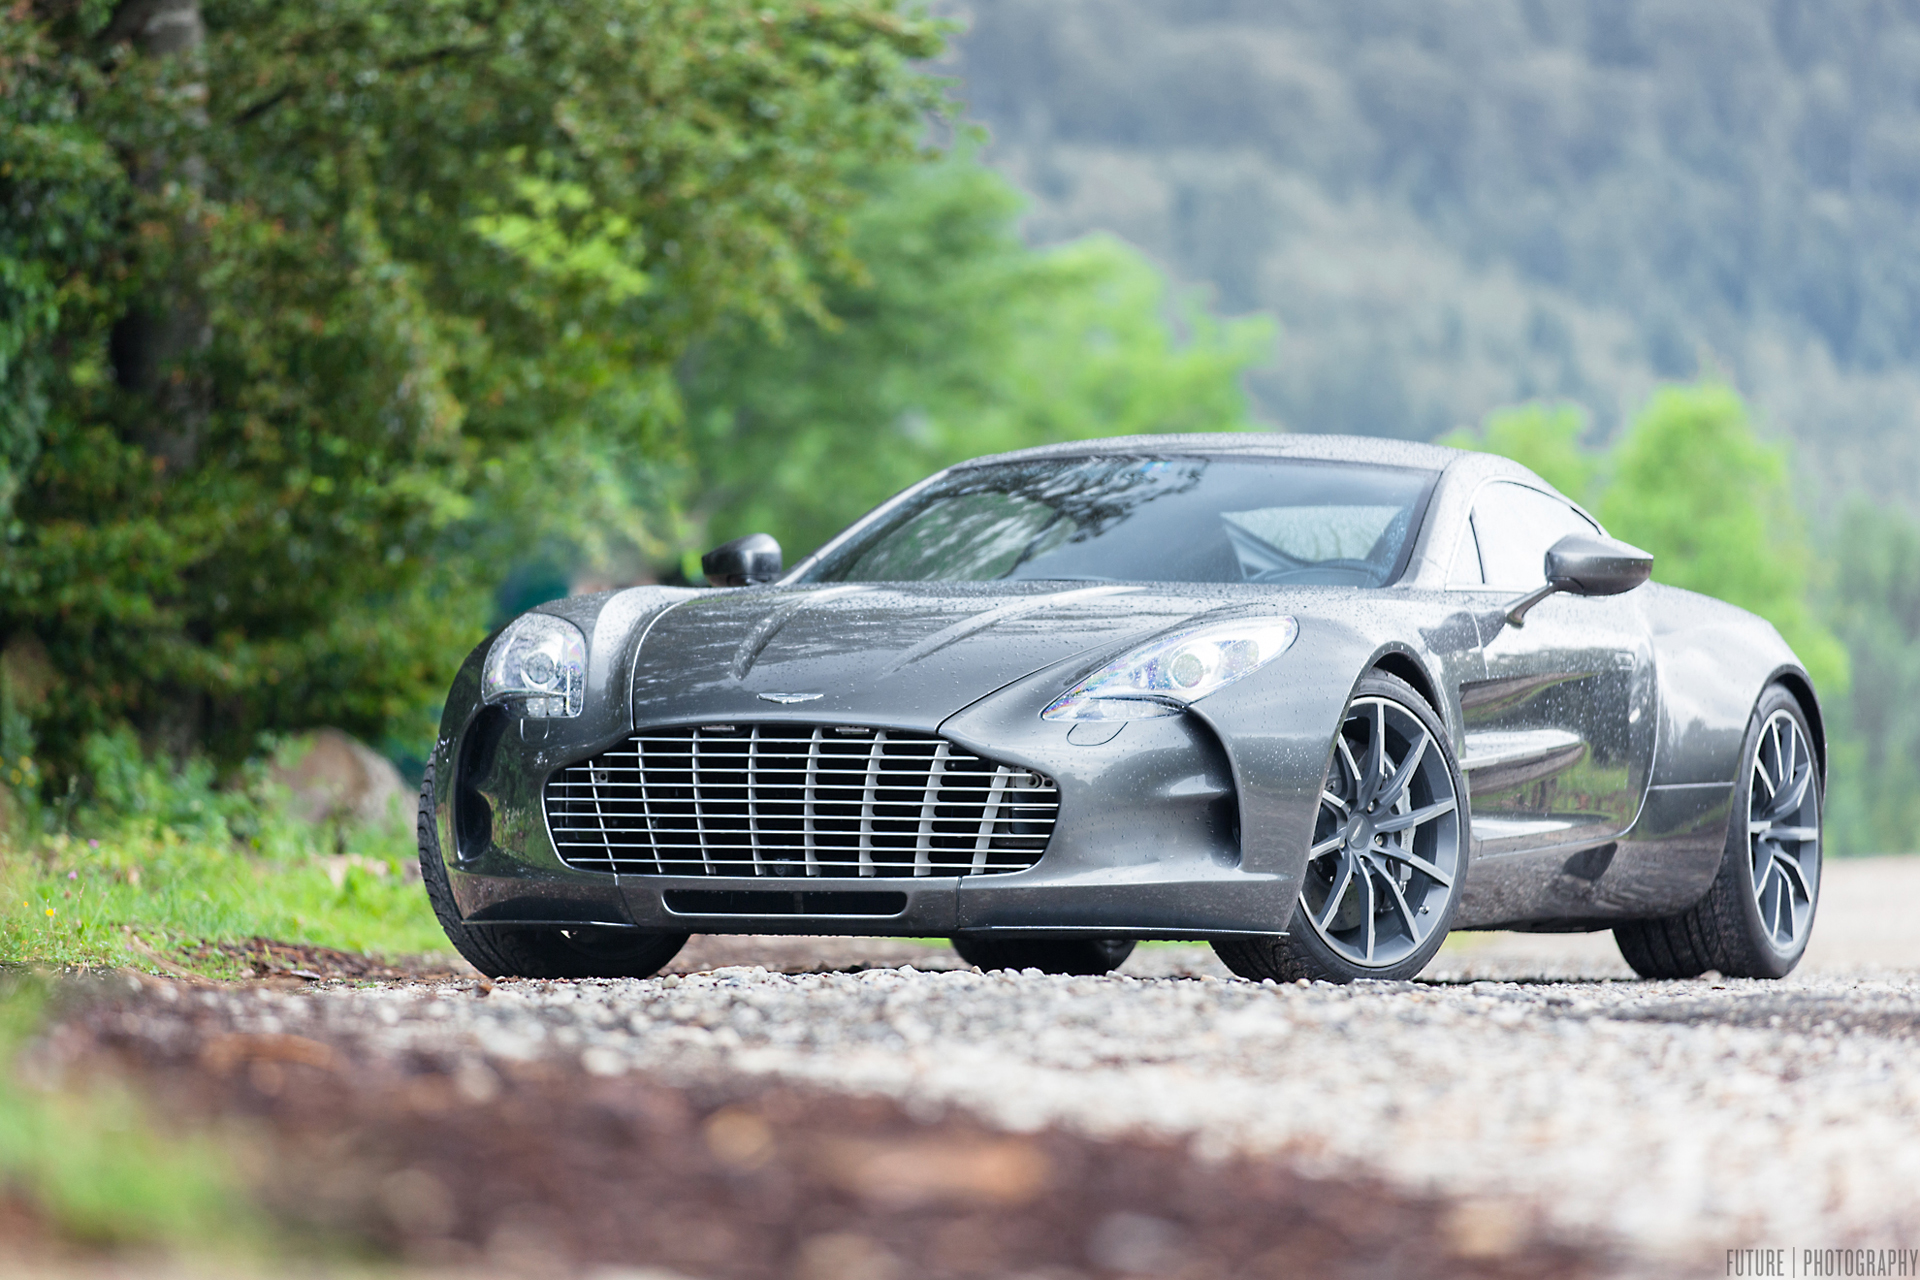 Free Download Aston Martin One 77 Wallpaper 10 1920 X 1280